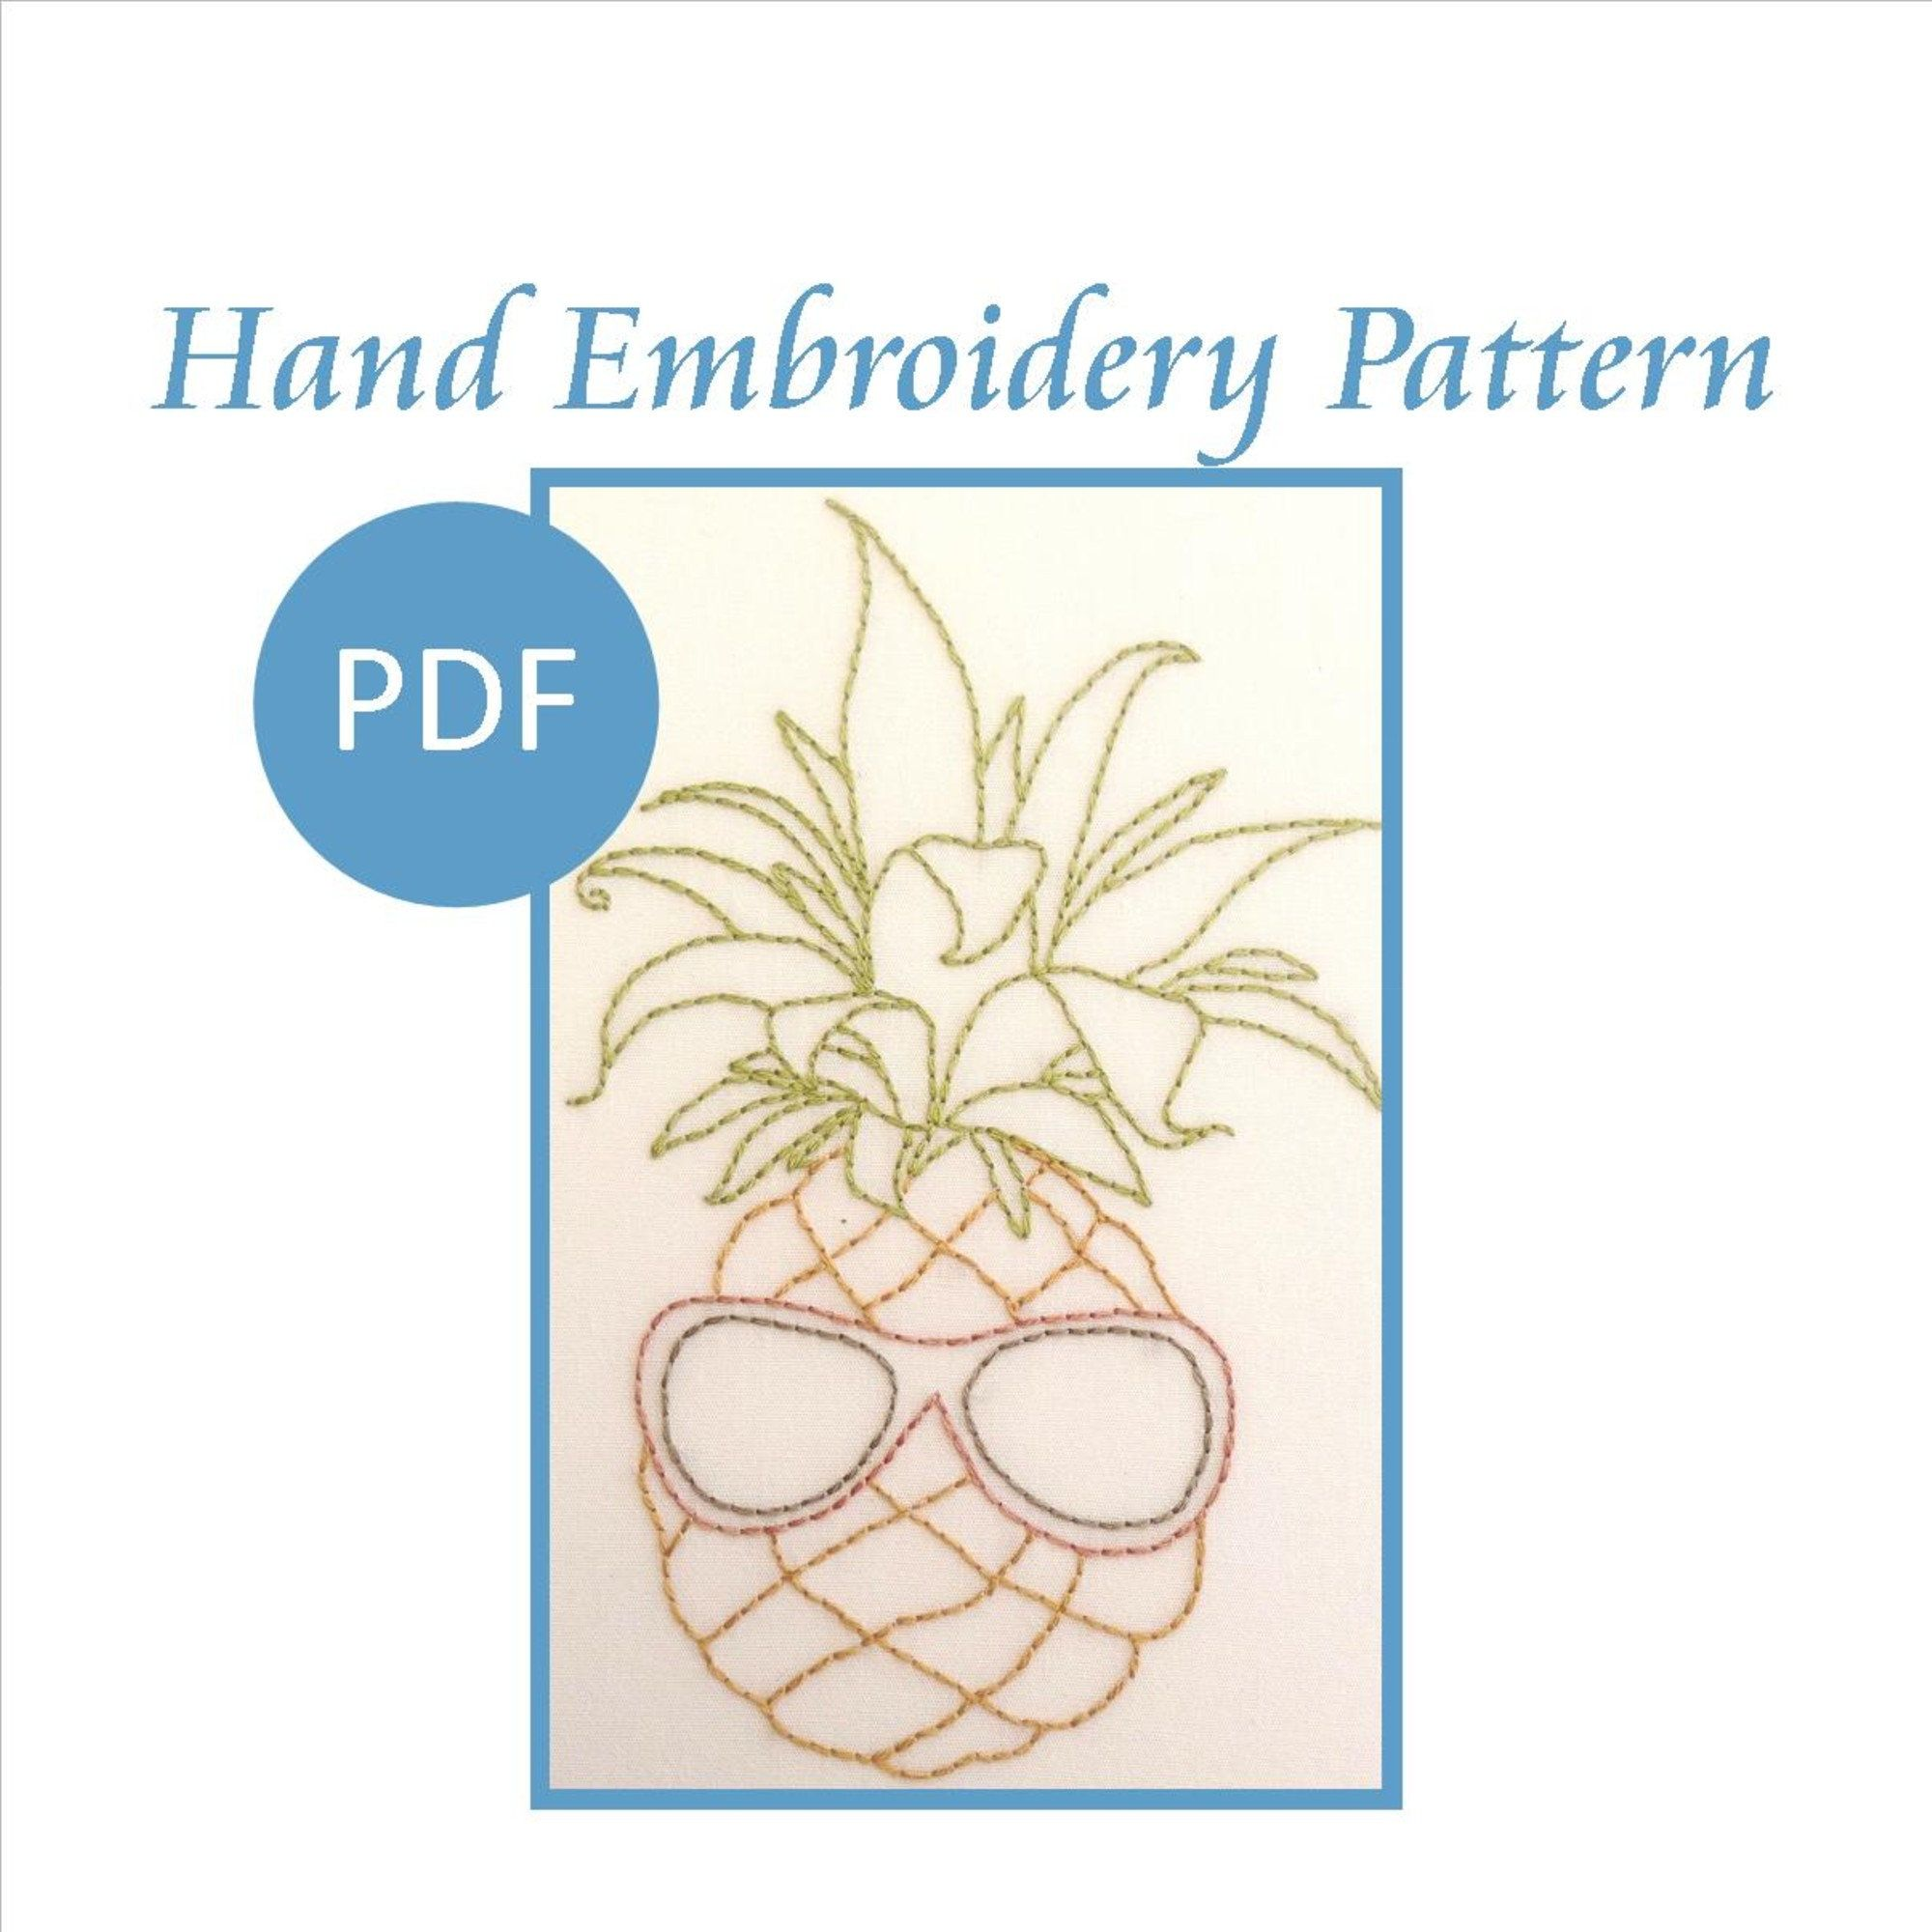 Hand Embroidery Pattern. PDF. Pineapple SG Pattern from